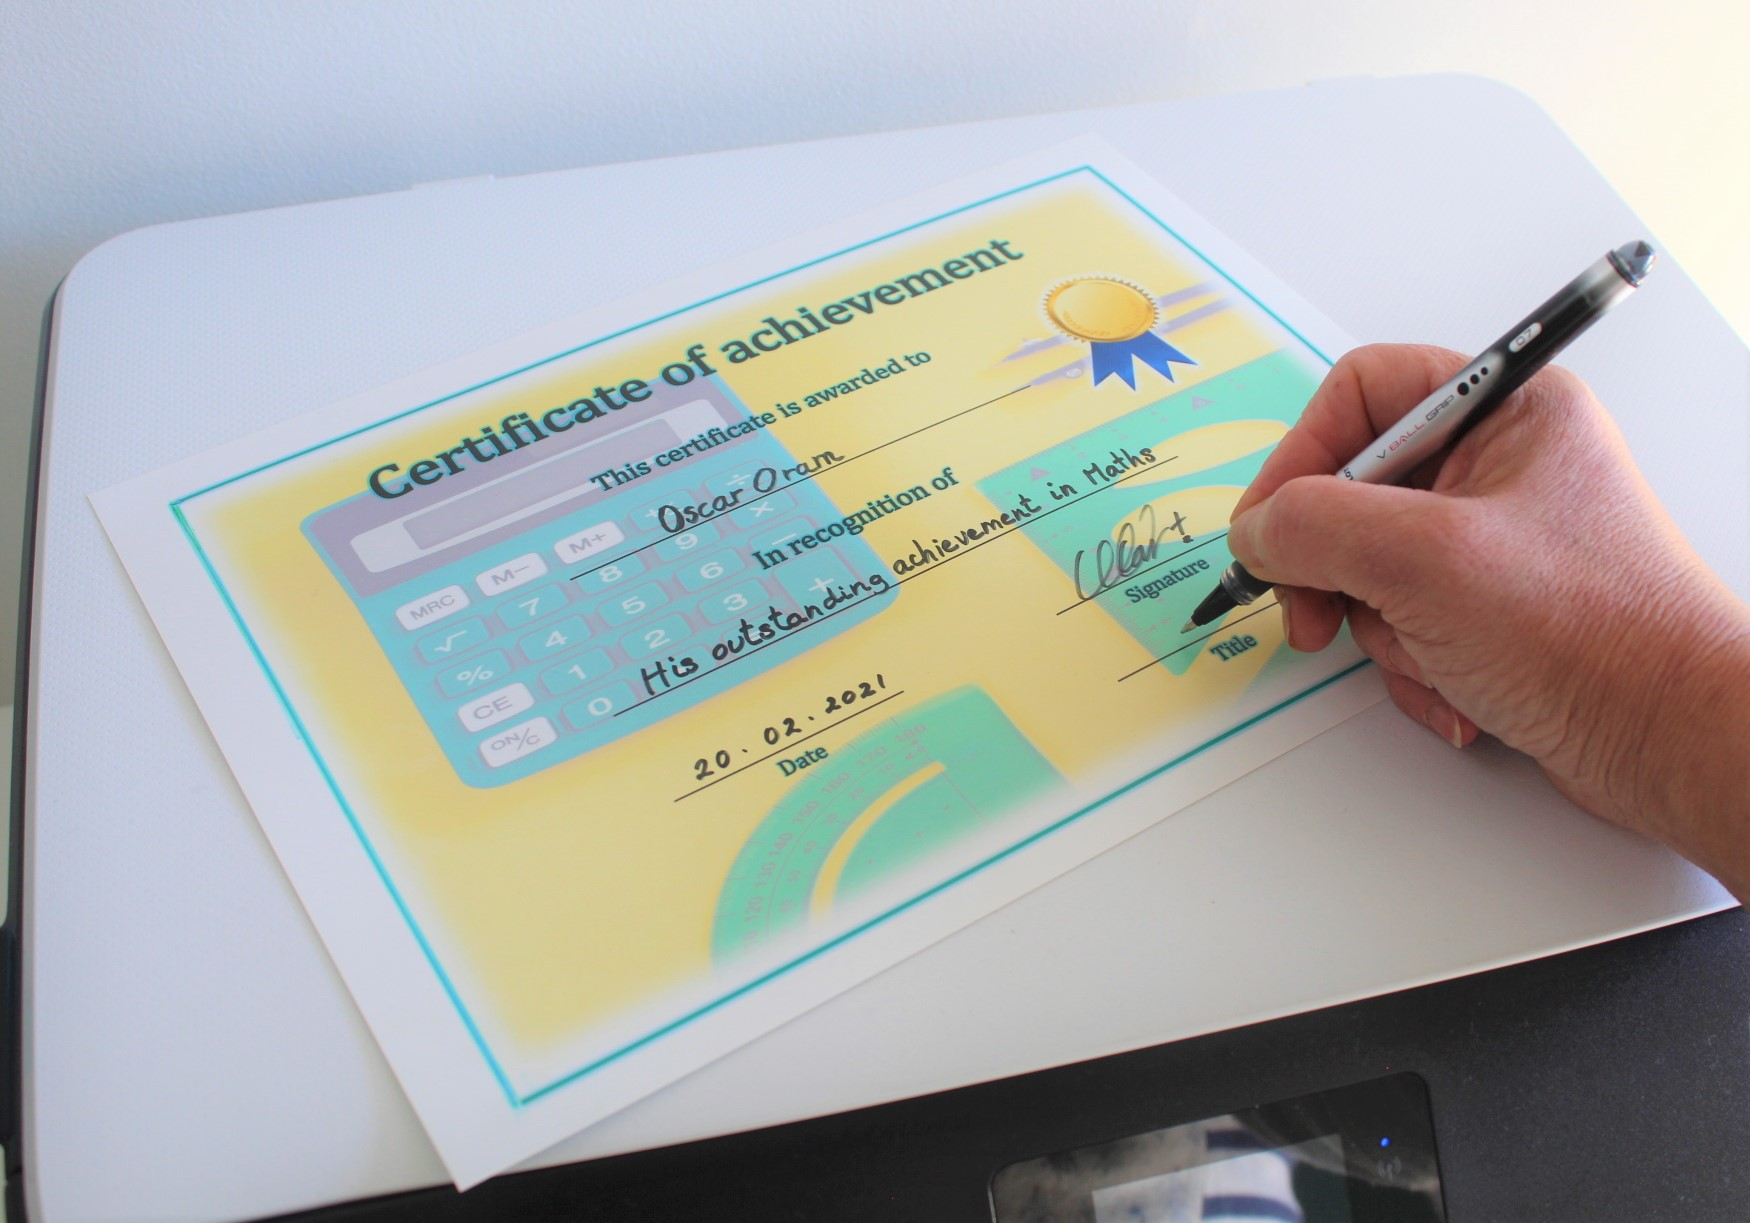 Completing the certificate by hand